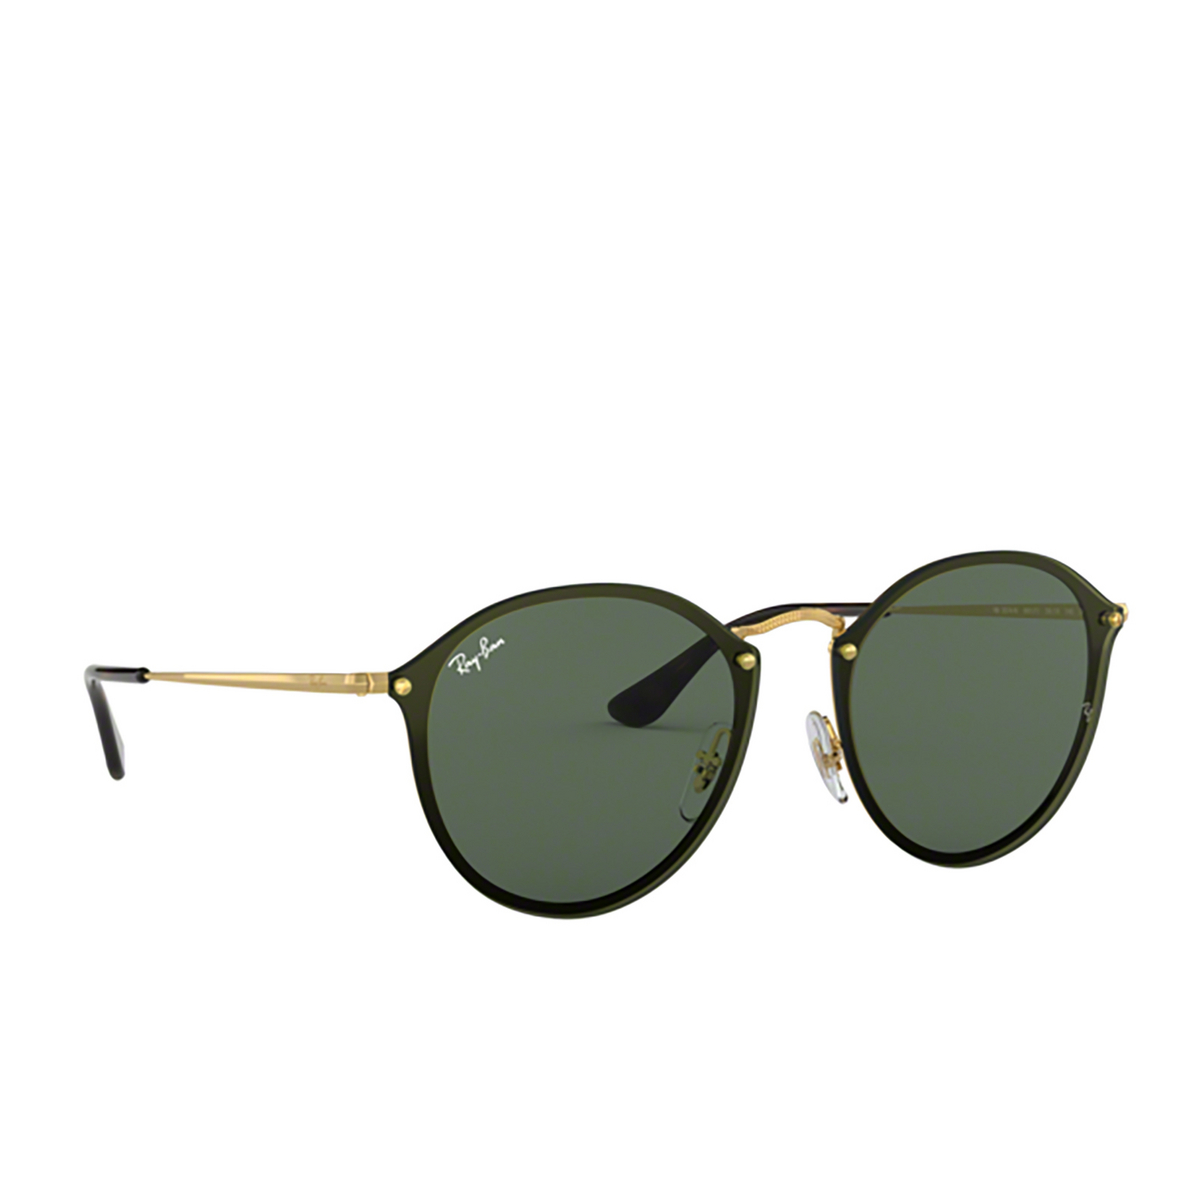 Ray-Ban® Round Sunglasses: Blaze Round RB3574N color Arista 001/71 - 2/3.